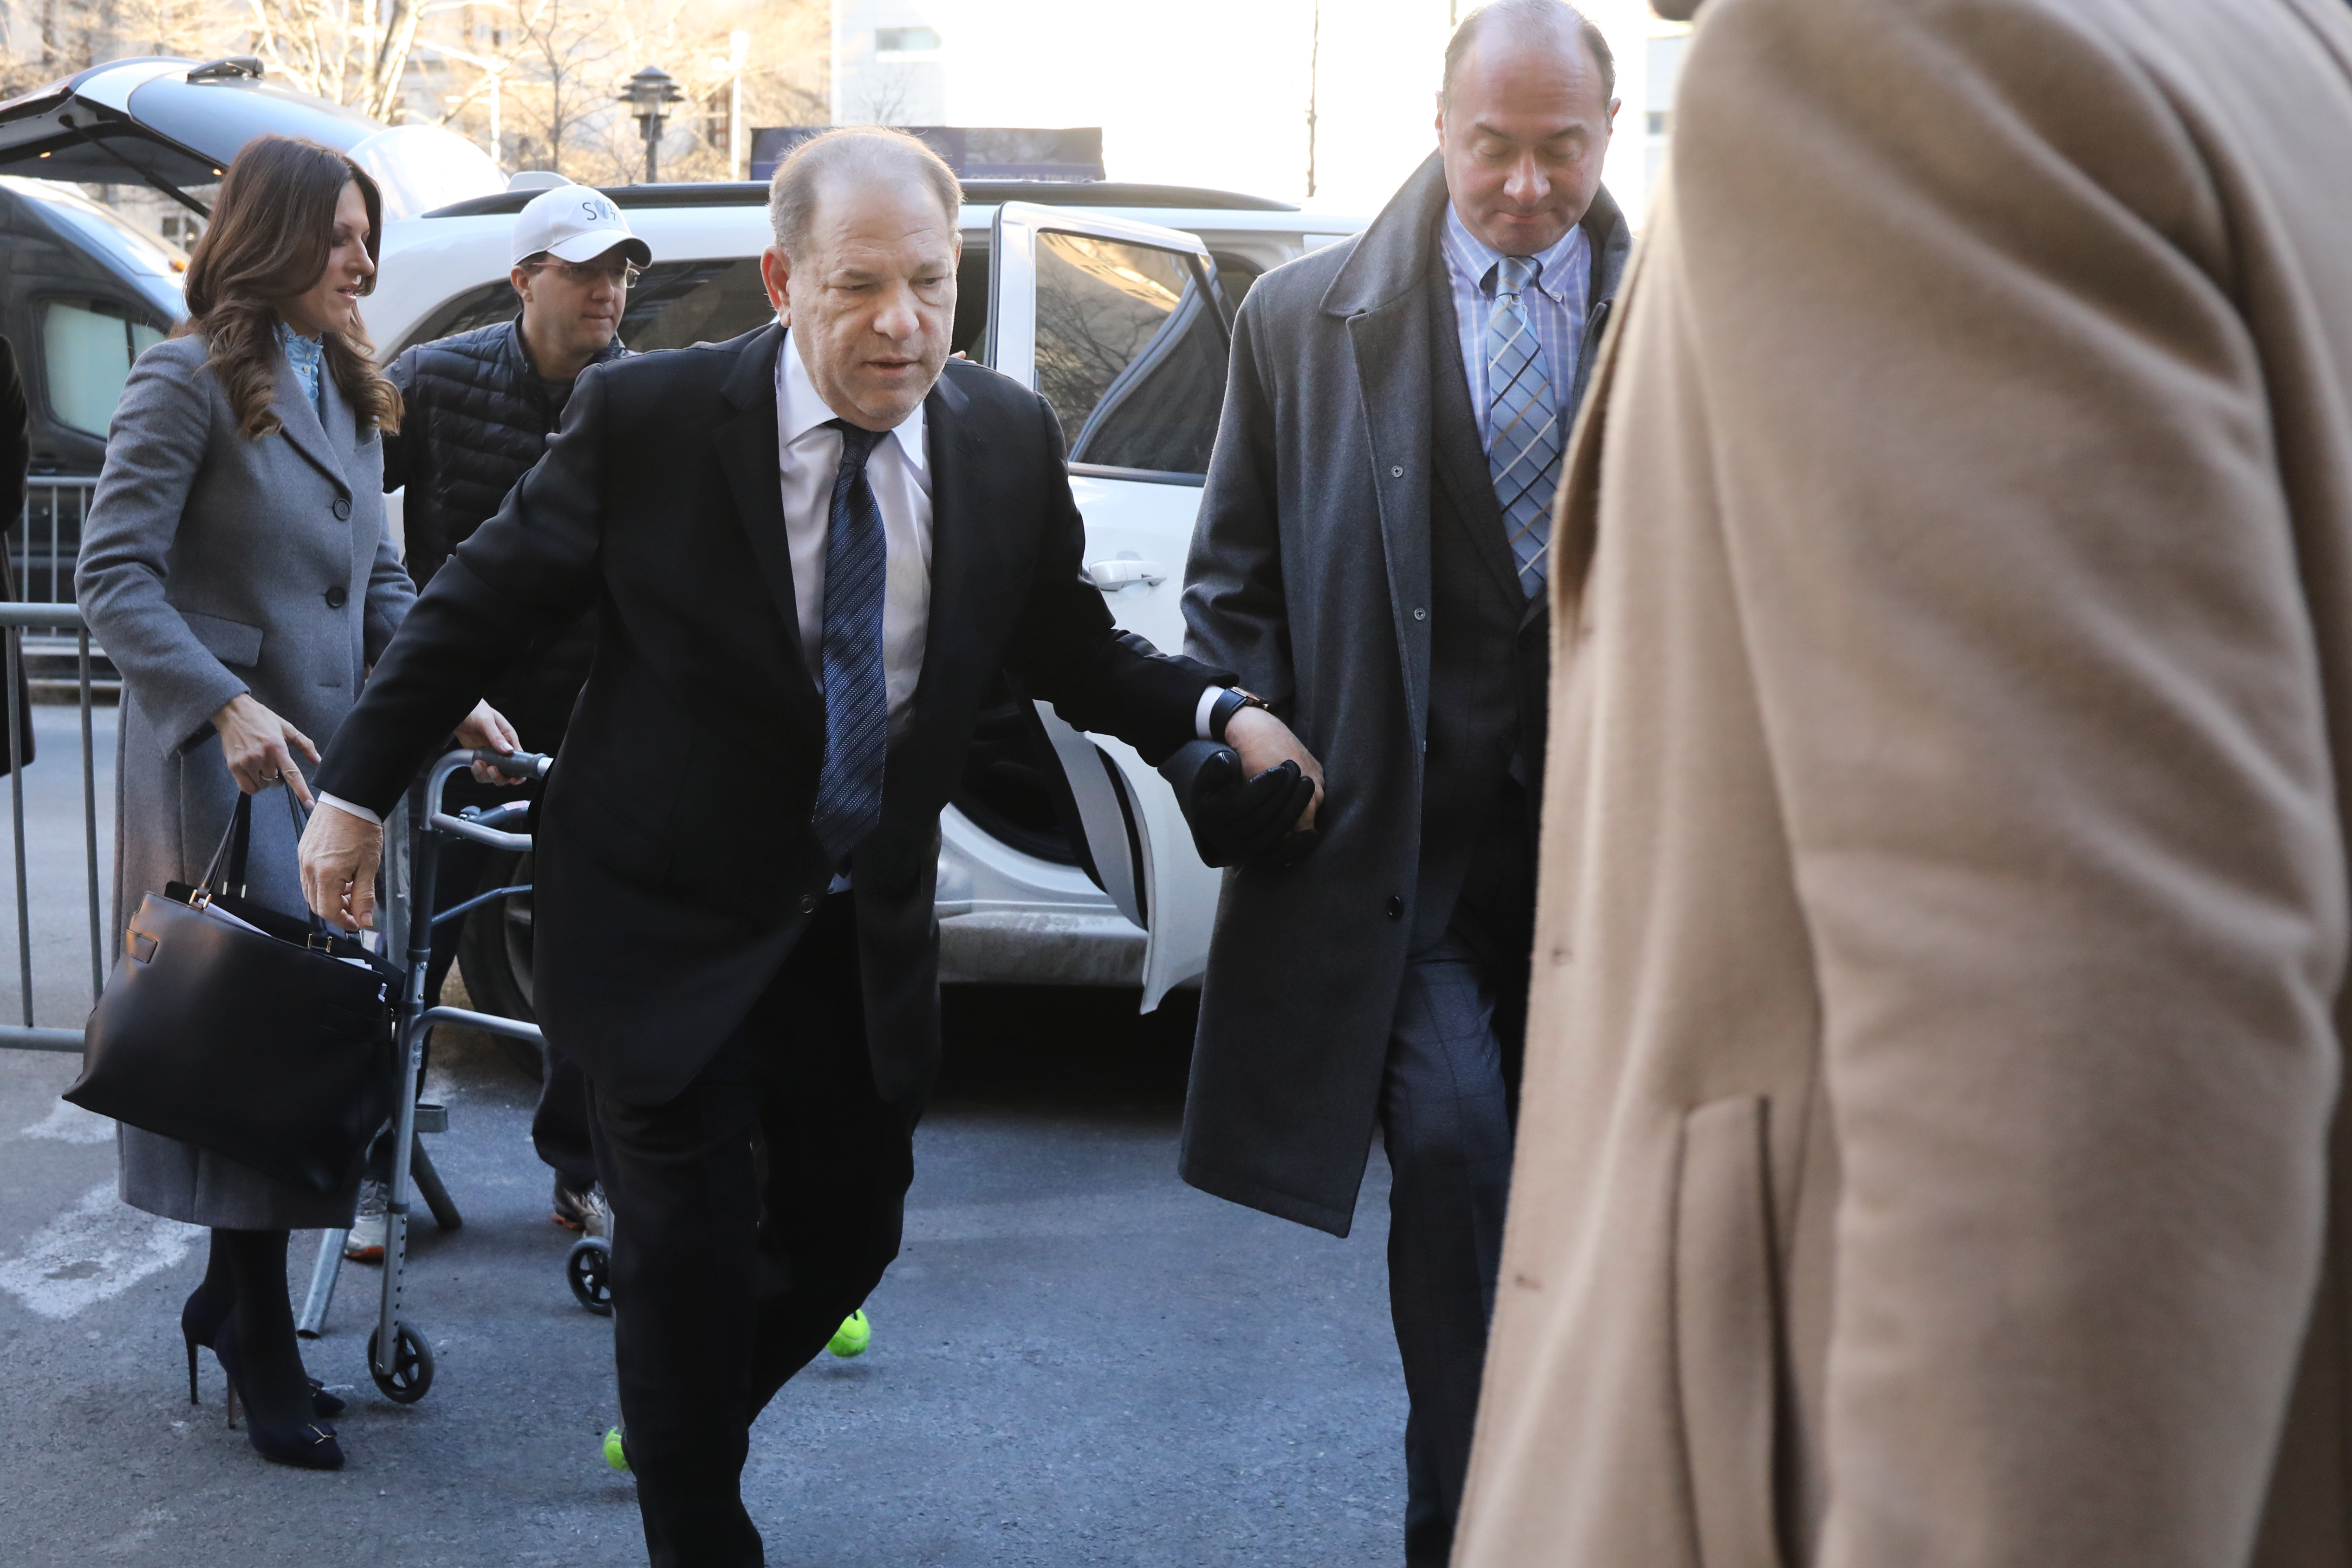 Harvey Weinstein arrives at a Manhattan court house for the first day of opening statements at his trial on January 22, 2020 in New York City. Weinstein, a movie producer whose alleged sexual misconduct helped spark the #MeToo movement, pleaded not-guilty on five counts of rape and sexual assault against two unnamed women and faces a possible life sentence in prison. (Photo by Spencer Platt/Getty Images)